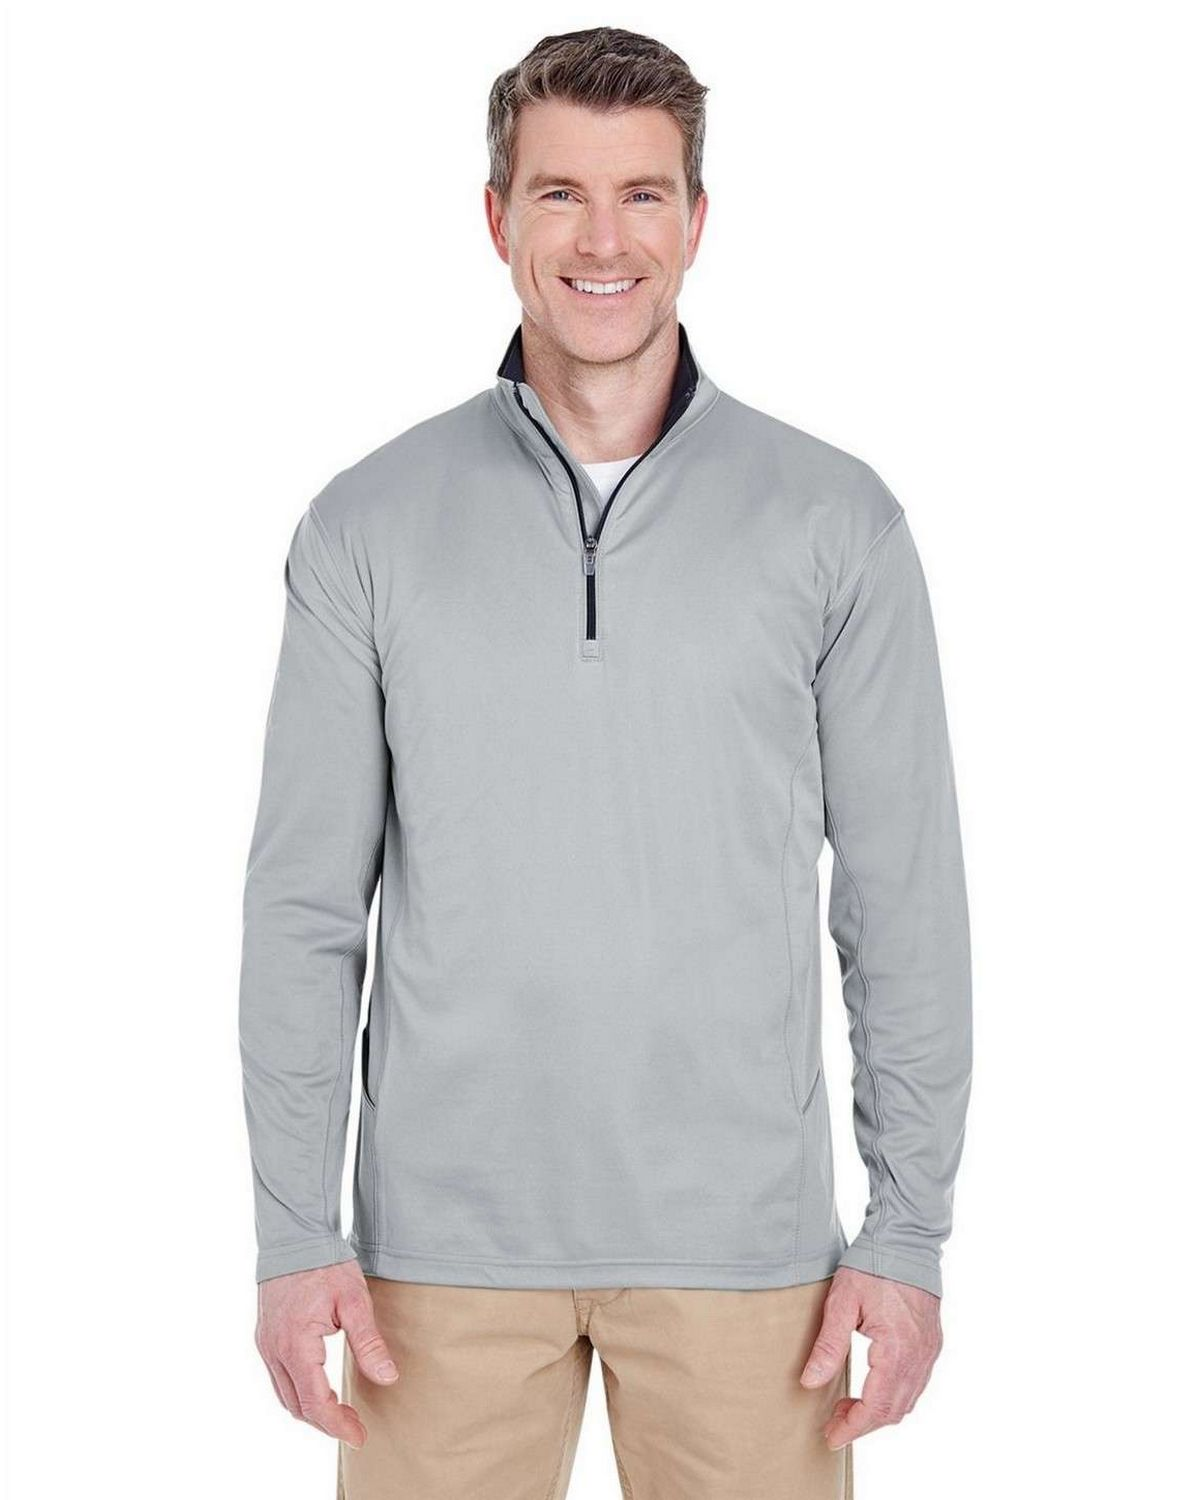 Ultraclub 8230 Adult Cool  Dry Sport 1/4 Zip Pullover